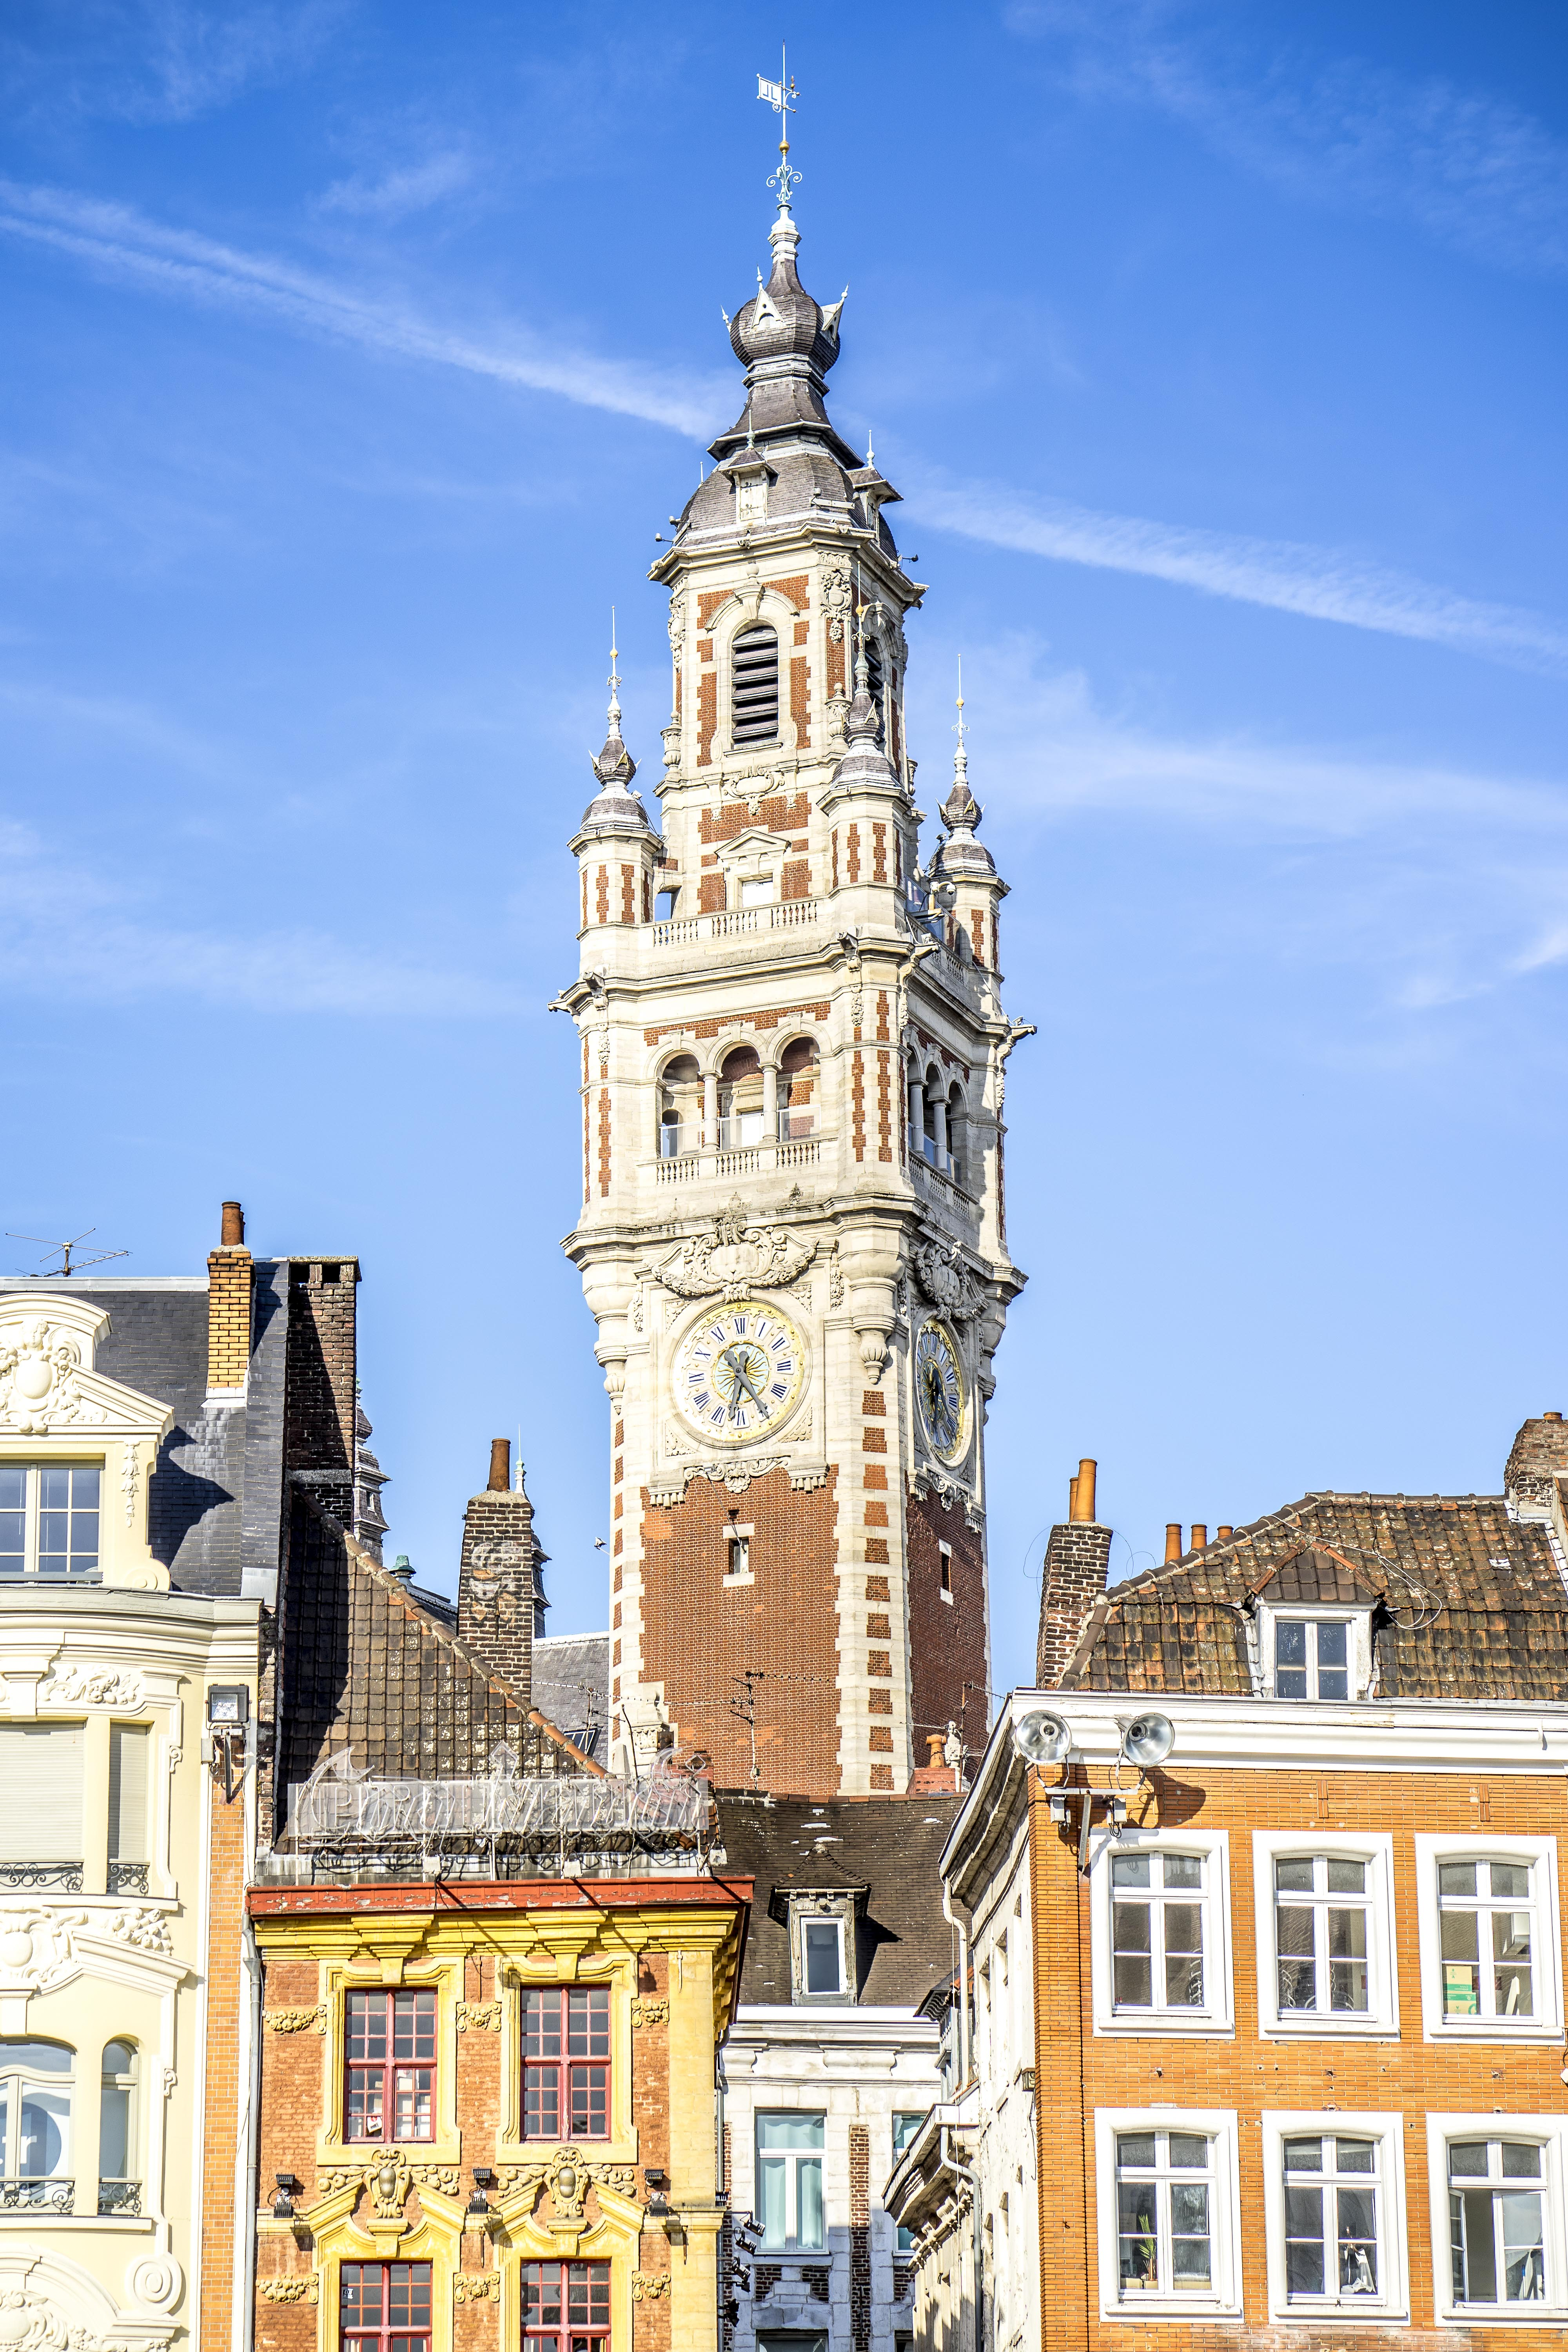 Lille, France - Colorful belfry